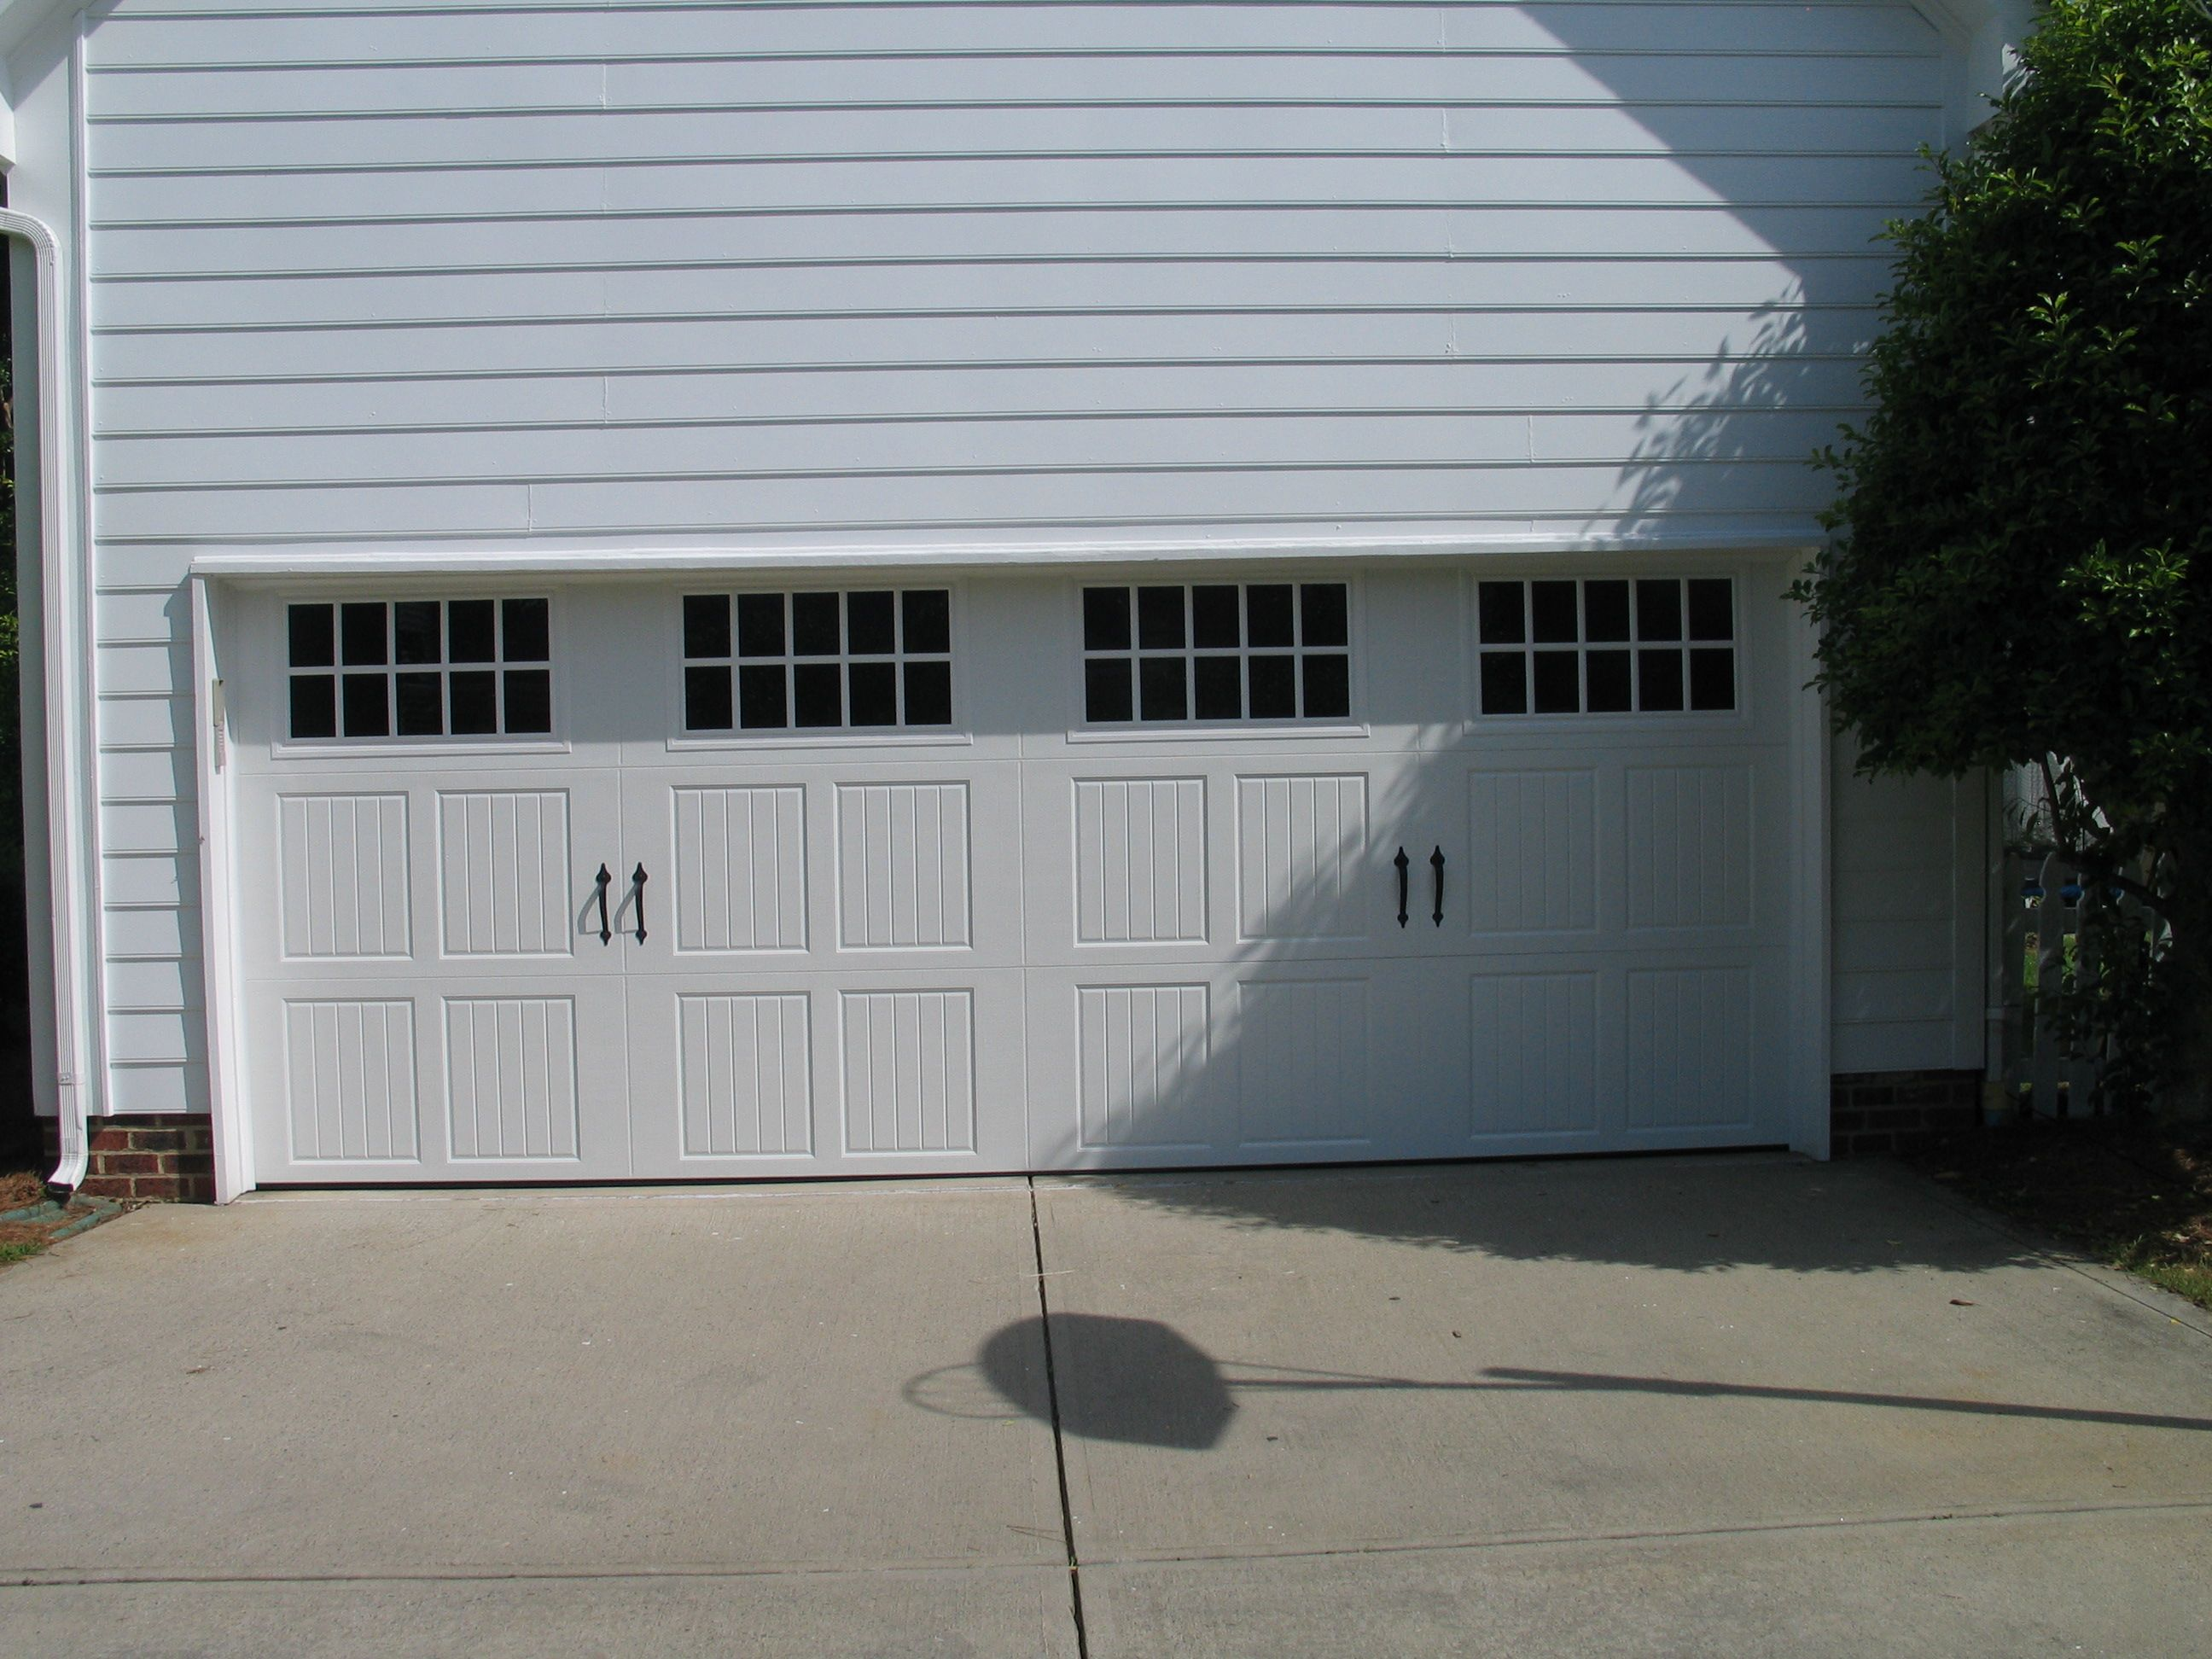 Three panel carriage house garage door with large windows three panel carriage house garage door with large windows rubansaba